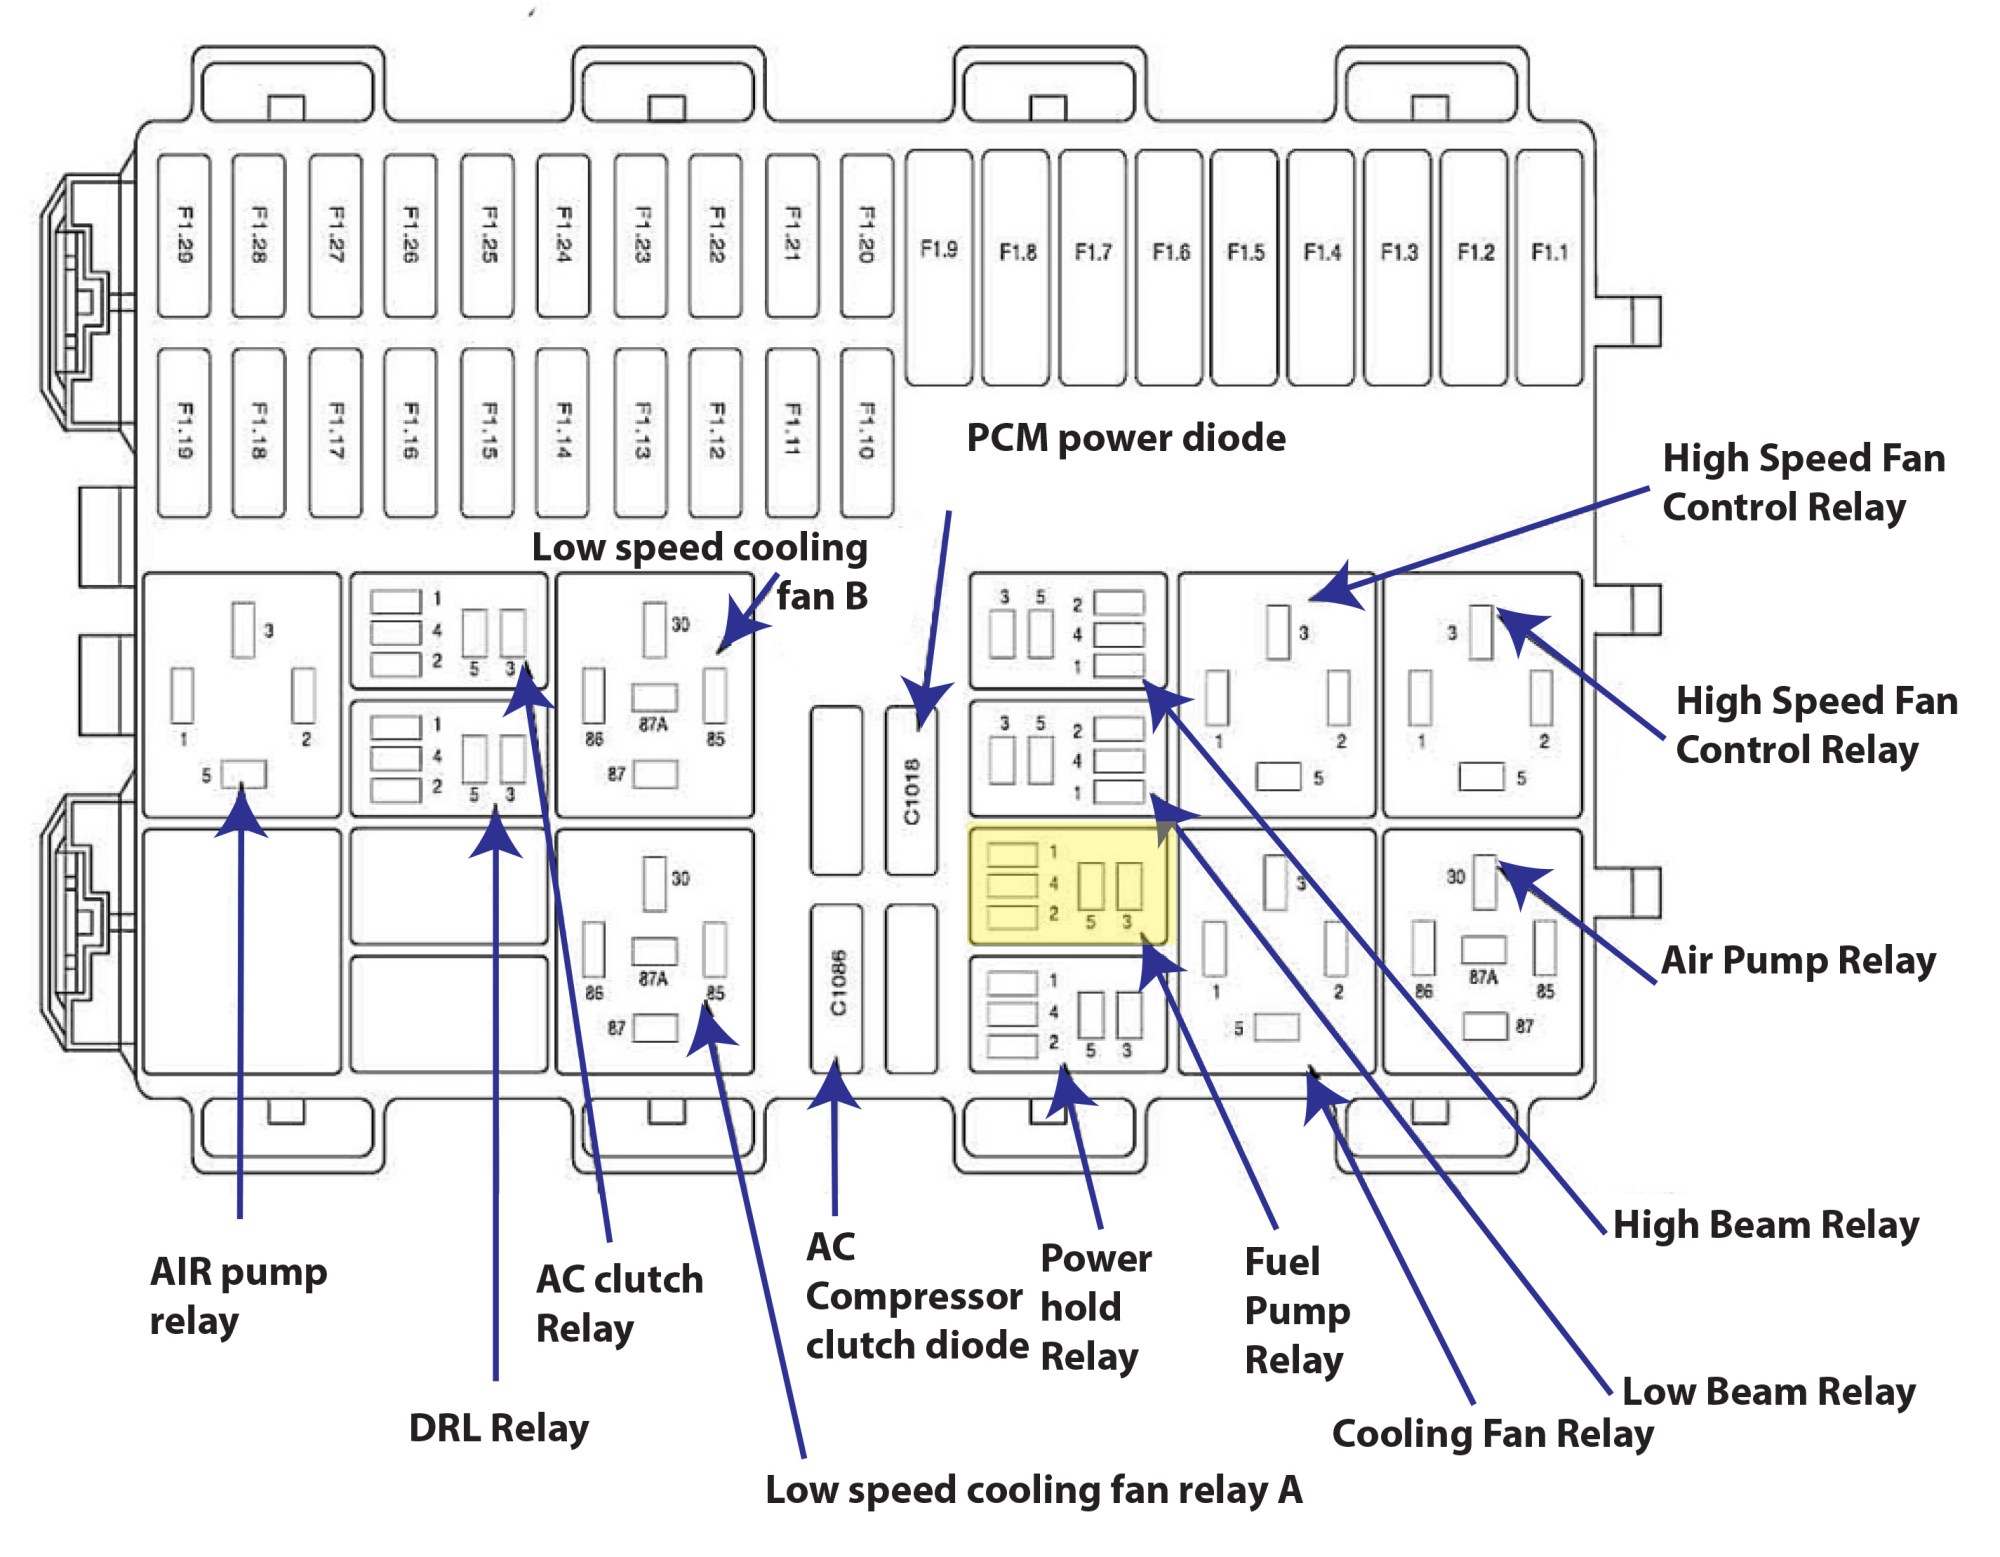 hight resolution of 2006 focus fuse diagram wiring diagram expert 06 ford focus fuse box layout 2006 ford focus